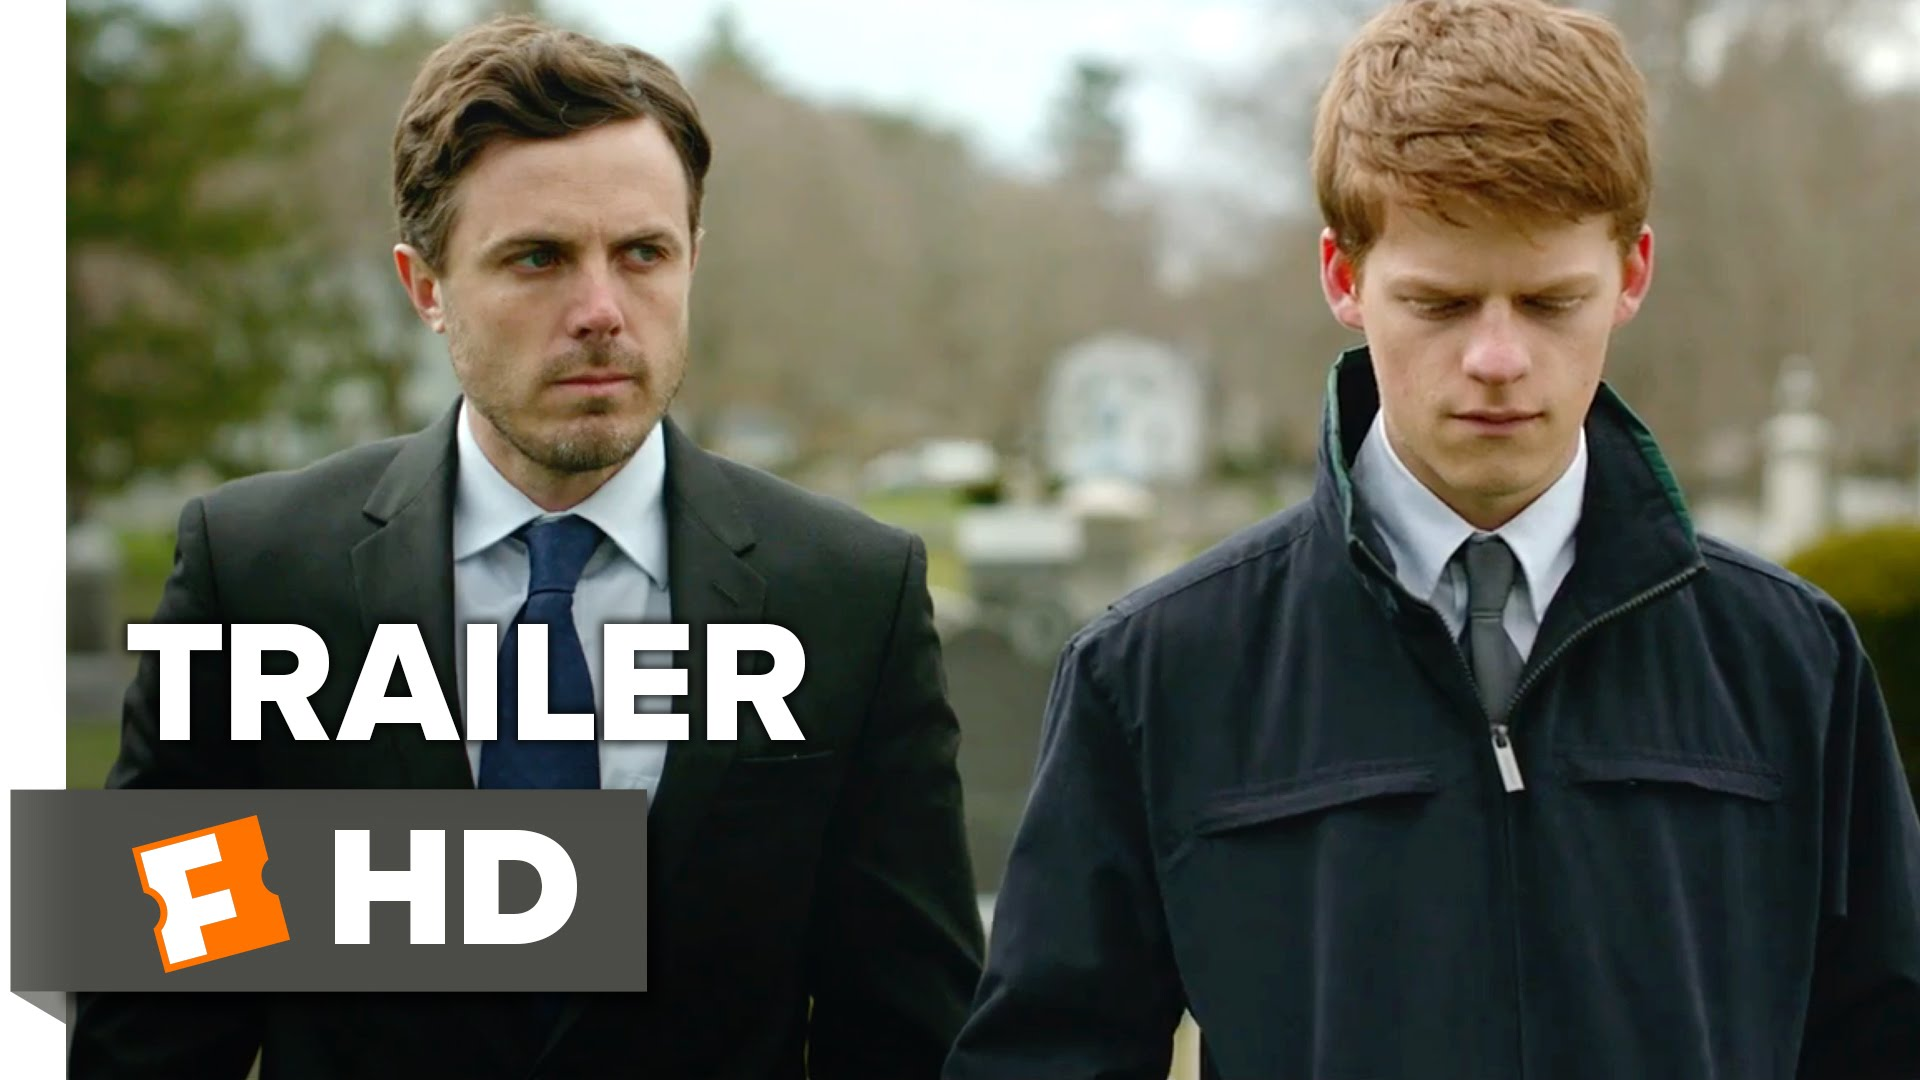 Manchester By The Sea A Beautiful Look At Tragedy How We Cope With It